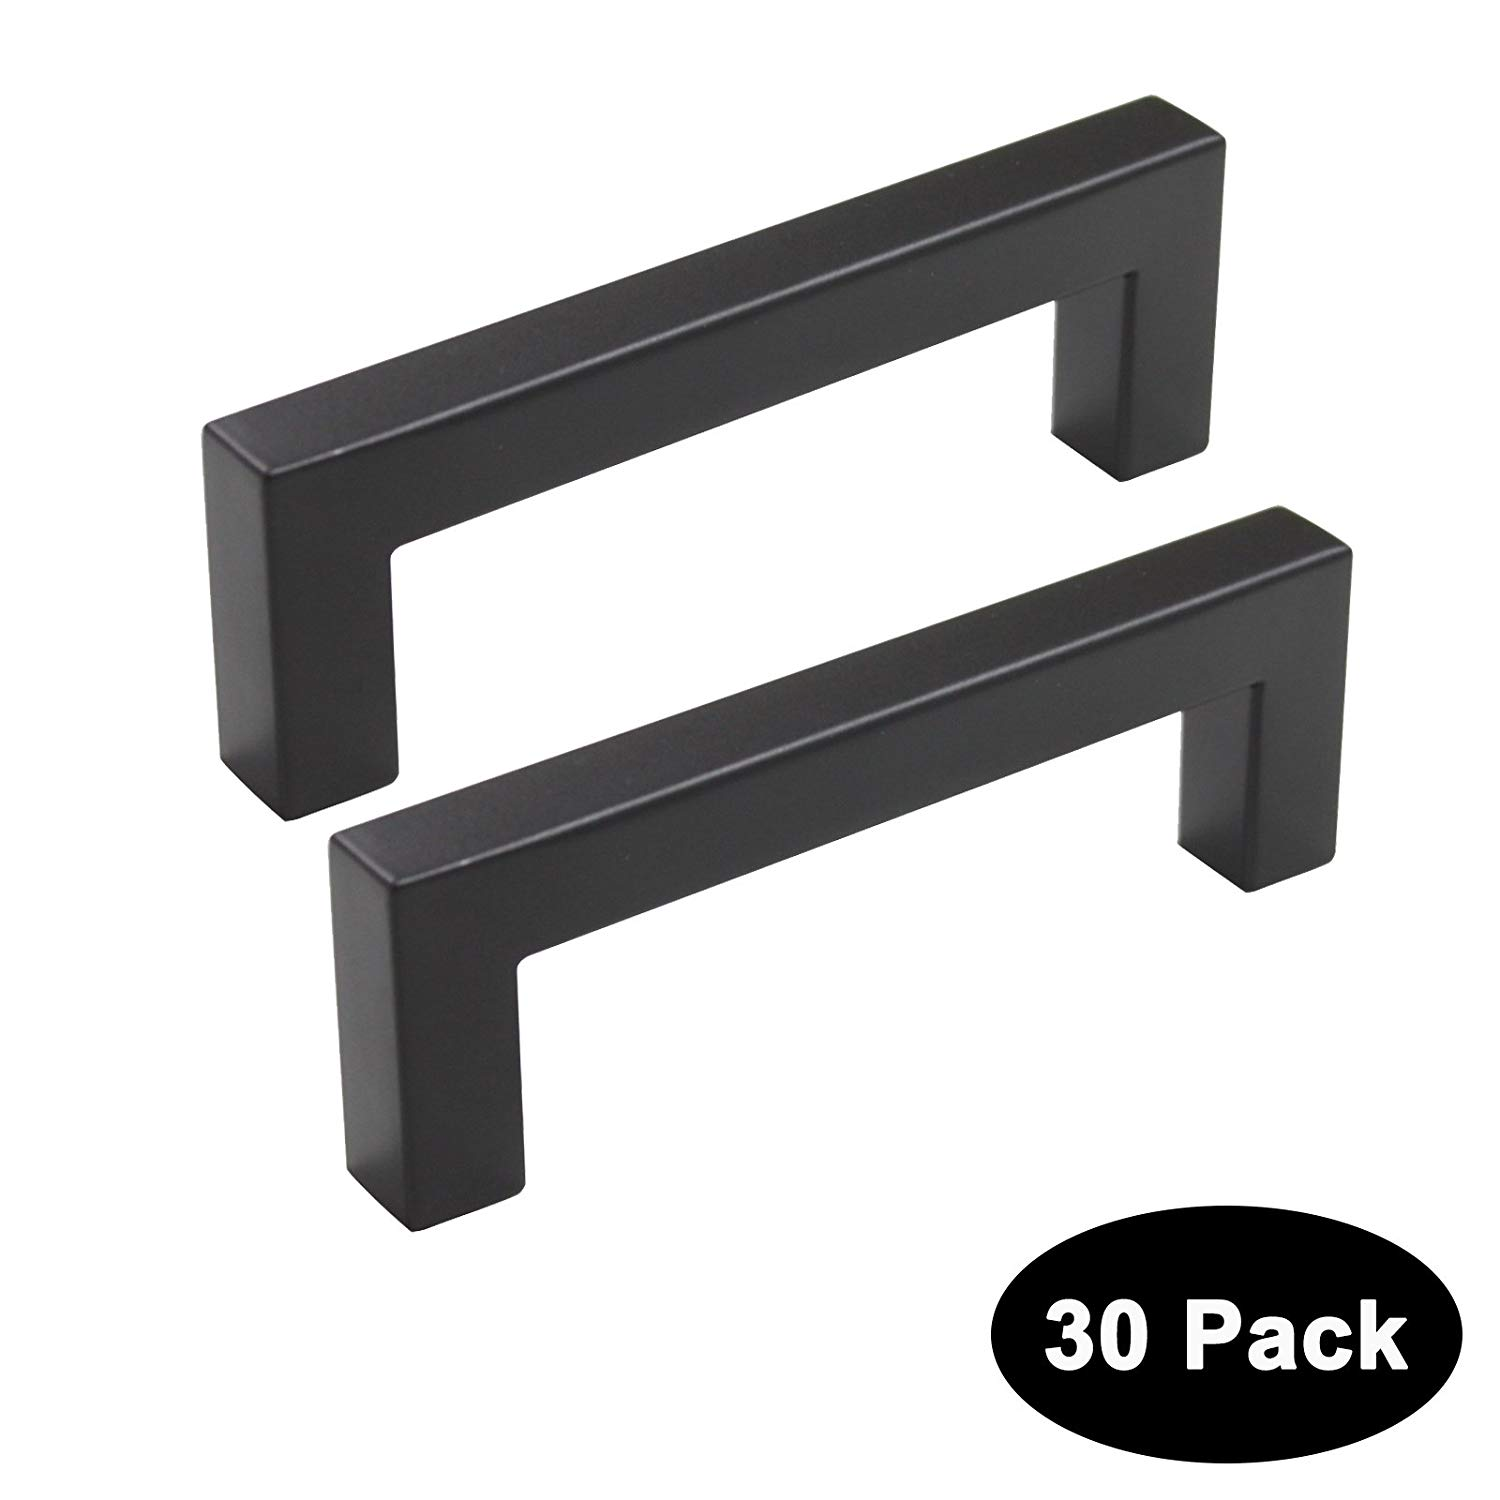 Probrico 30 Pack 3.75 inch (96mm) Hole Centers Square Corner Kitchen Cabinet Door Handles and Knobs Black Drawer Pulls Barthroom Bedroom Furniture Handles Stainless Steel